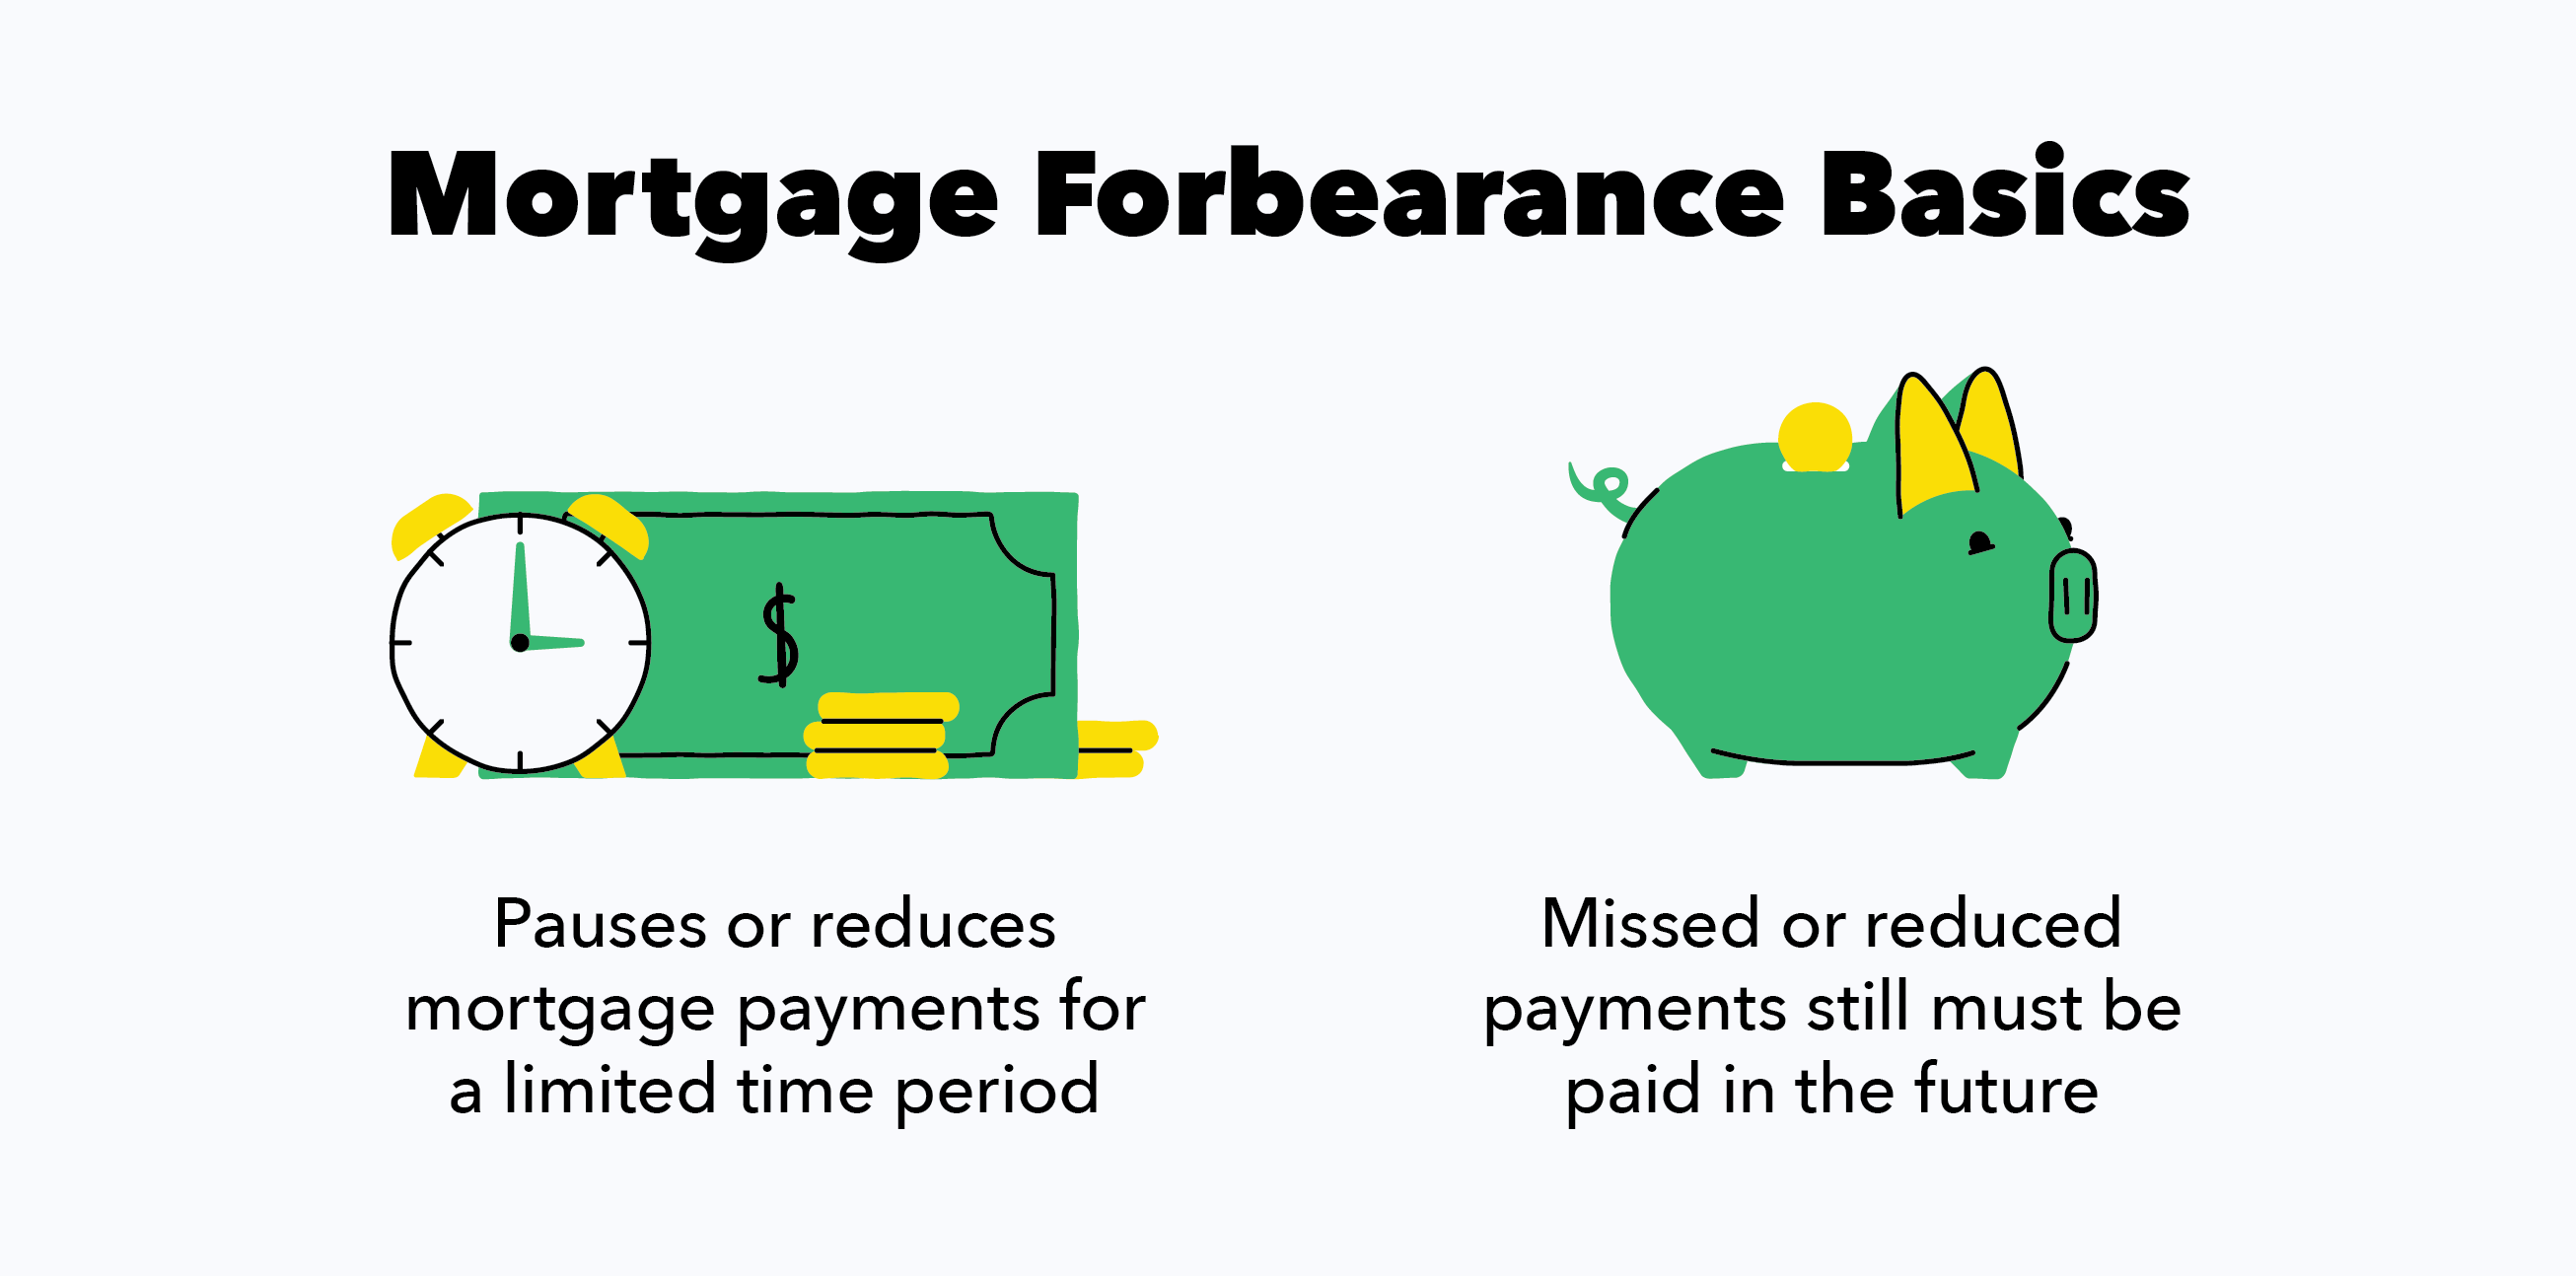 Mortgage forbearance pauses or reduces payments